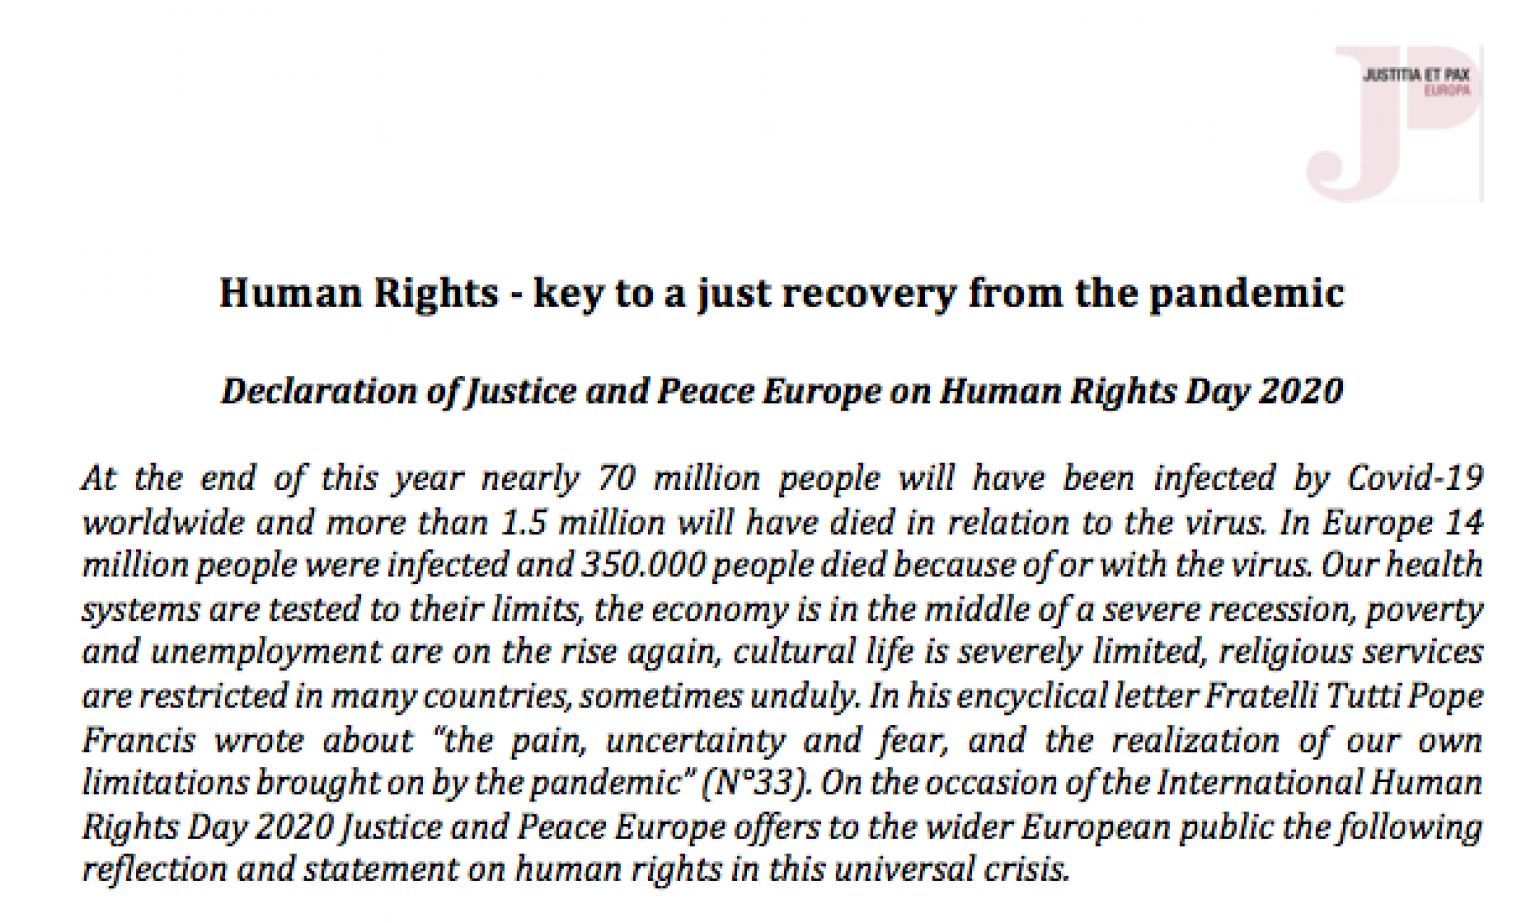 Human Rights - key to a just recovery from the pandemic